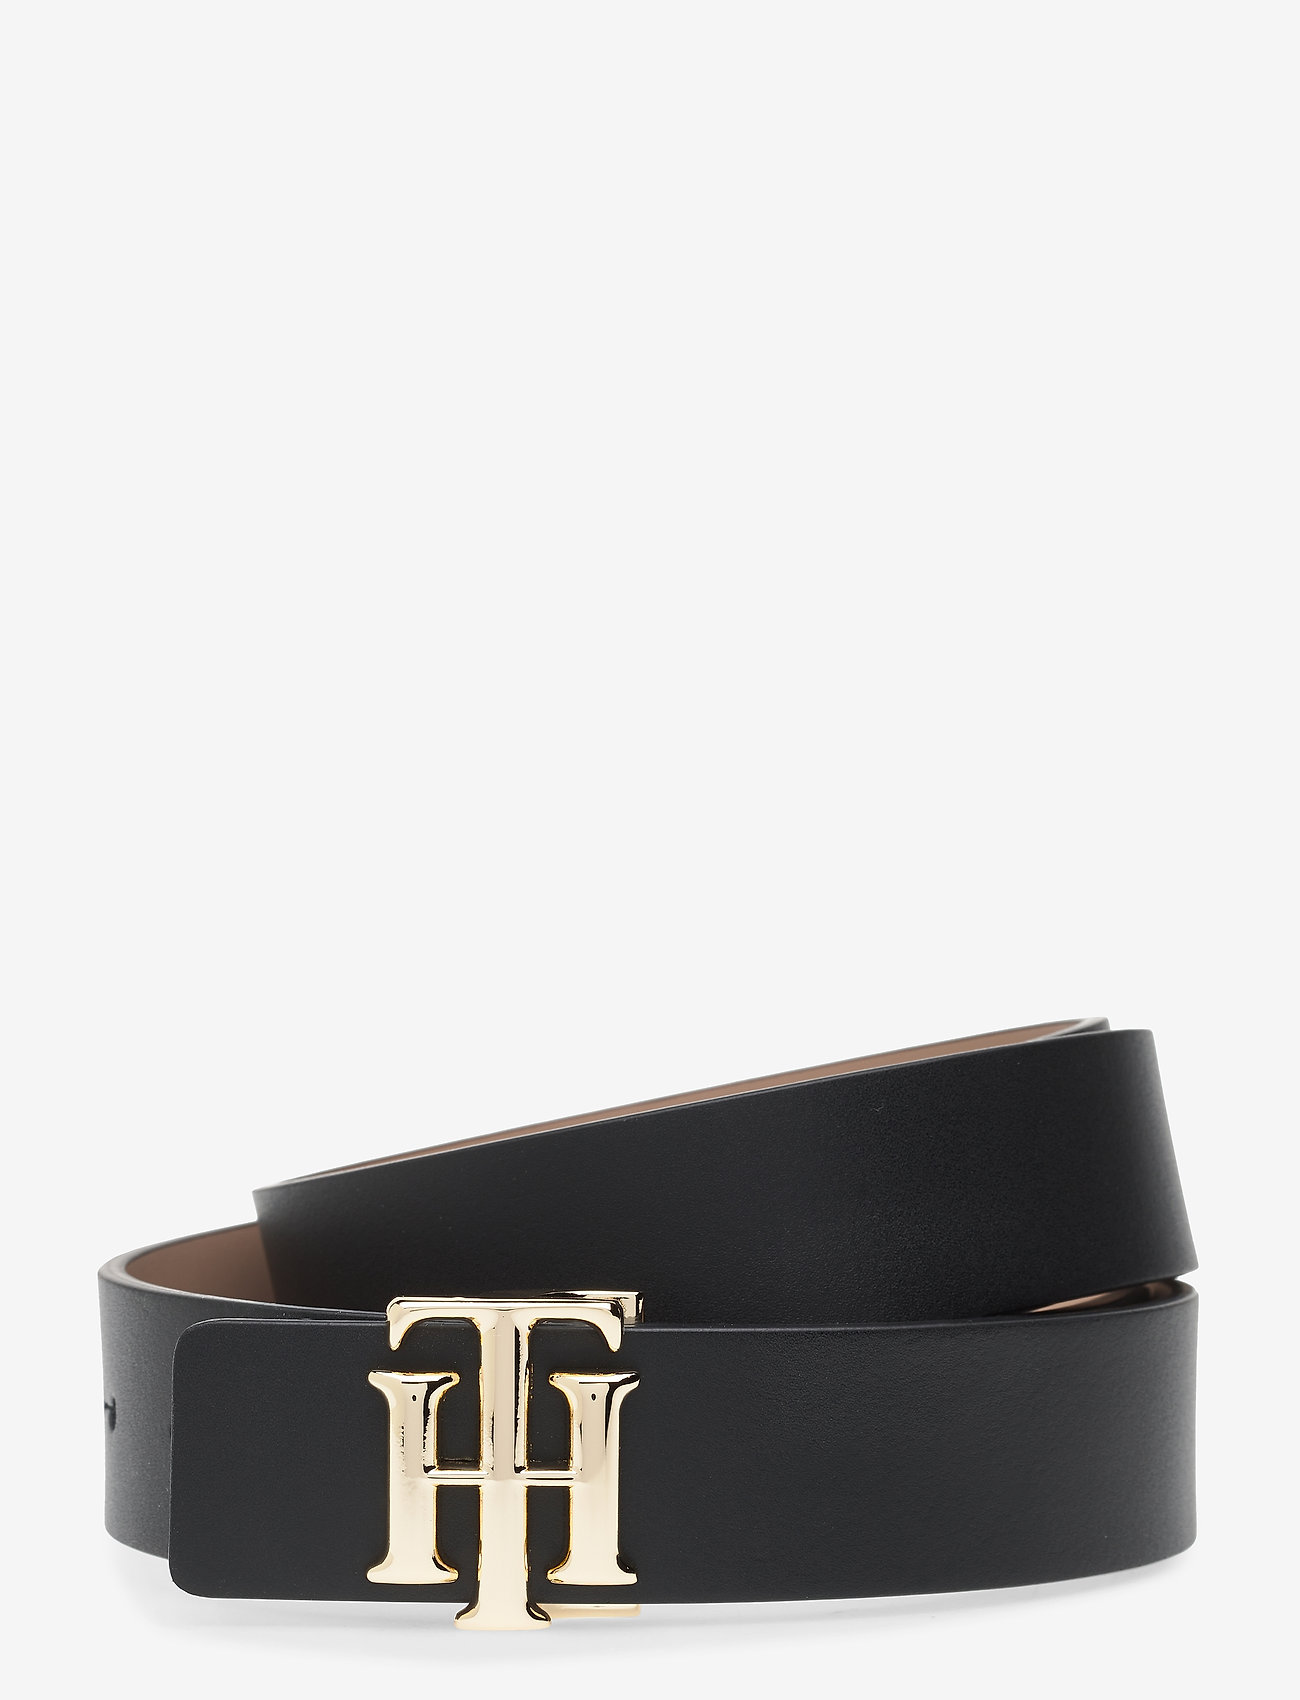 Tommy Hilfiger - TH LOGO REVERSIBLE BELT 3.0 - riemen - black / oakmont - 0